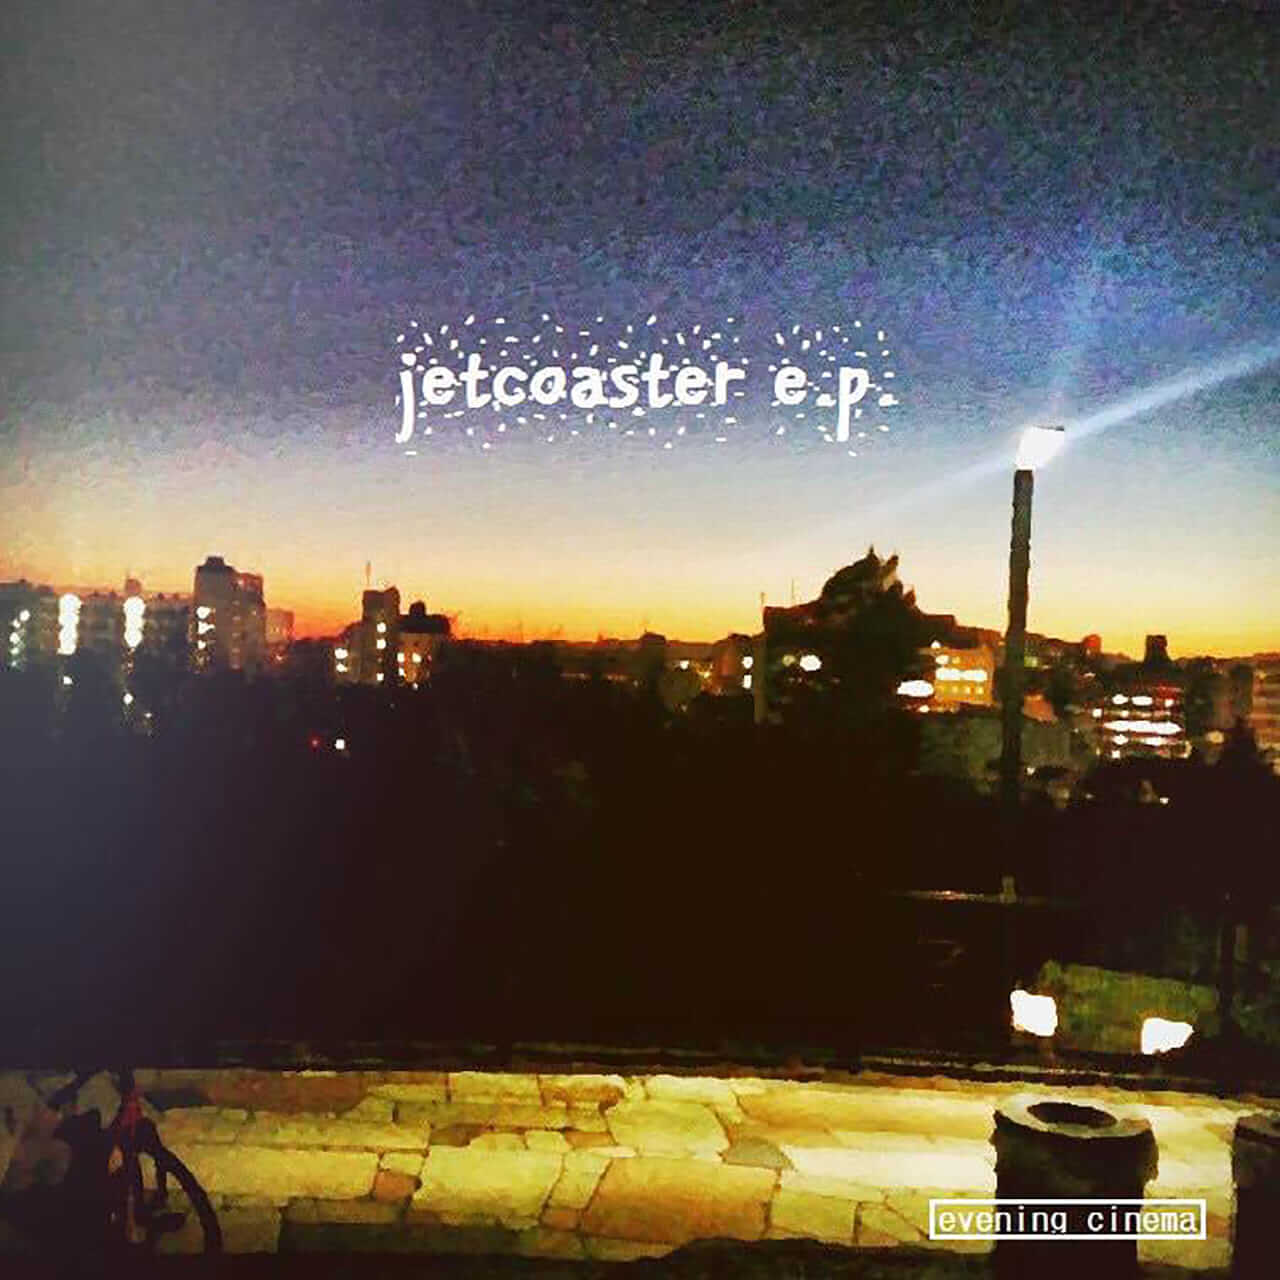 evening cinema 『jetcoaster e.p.』